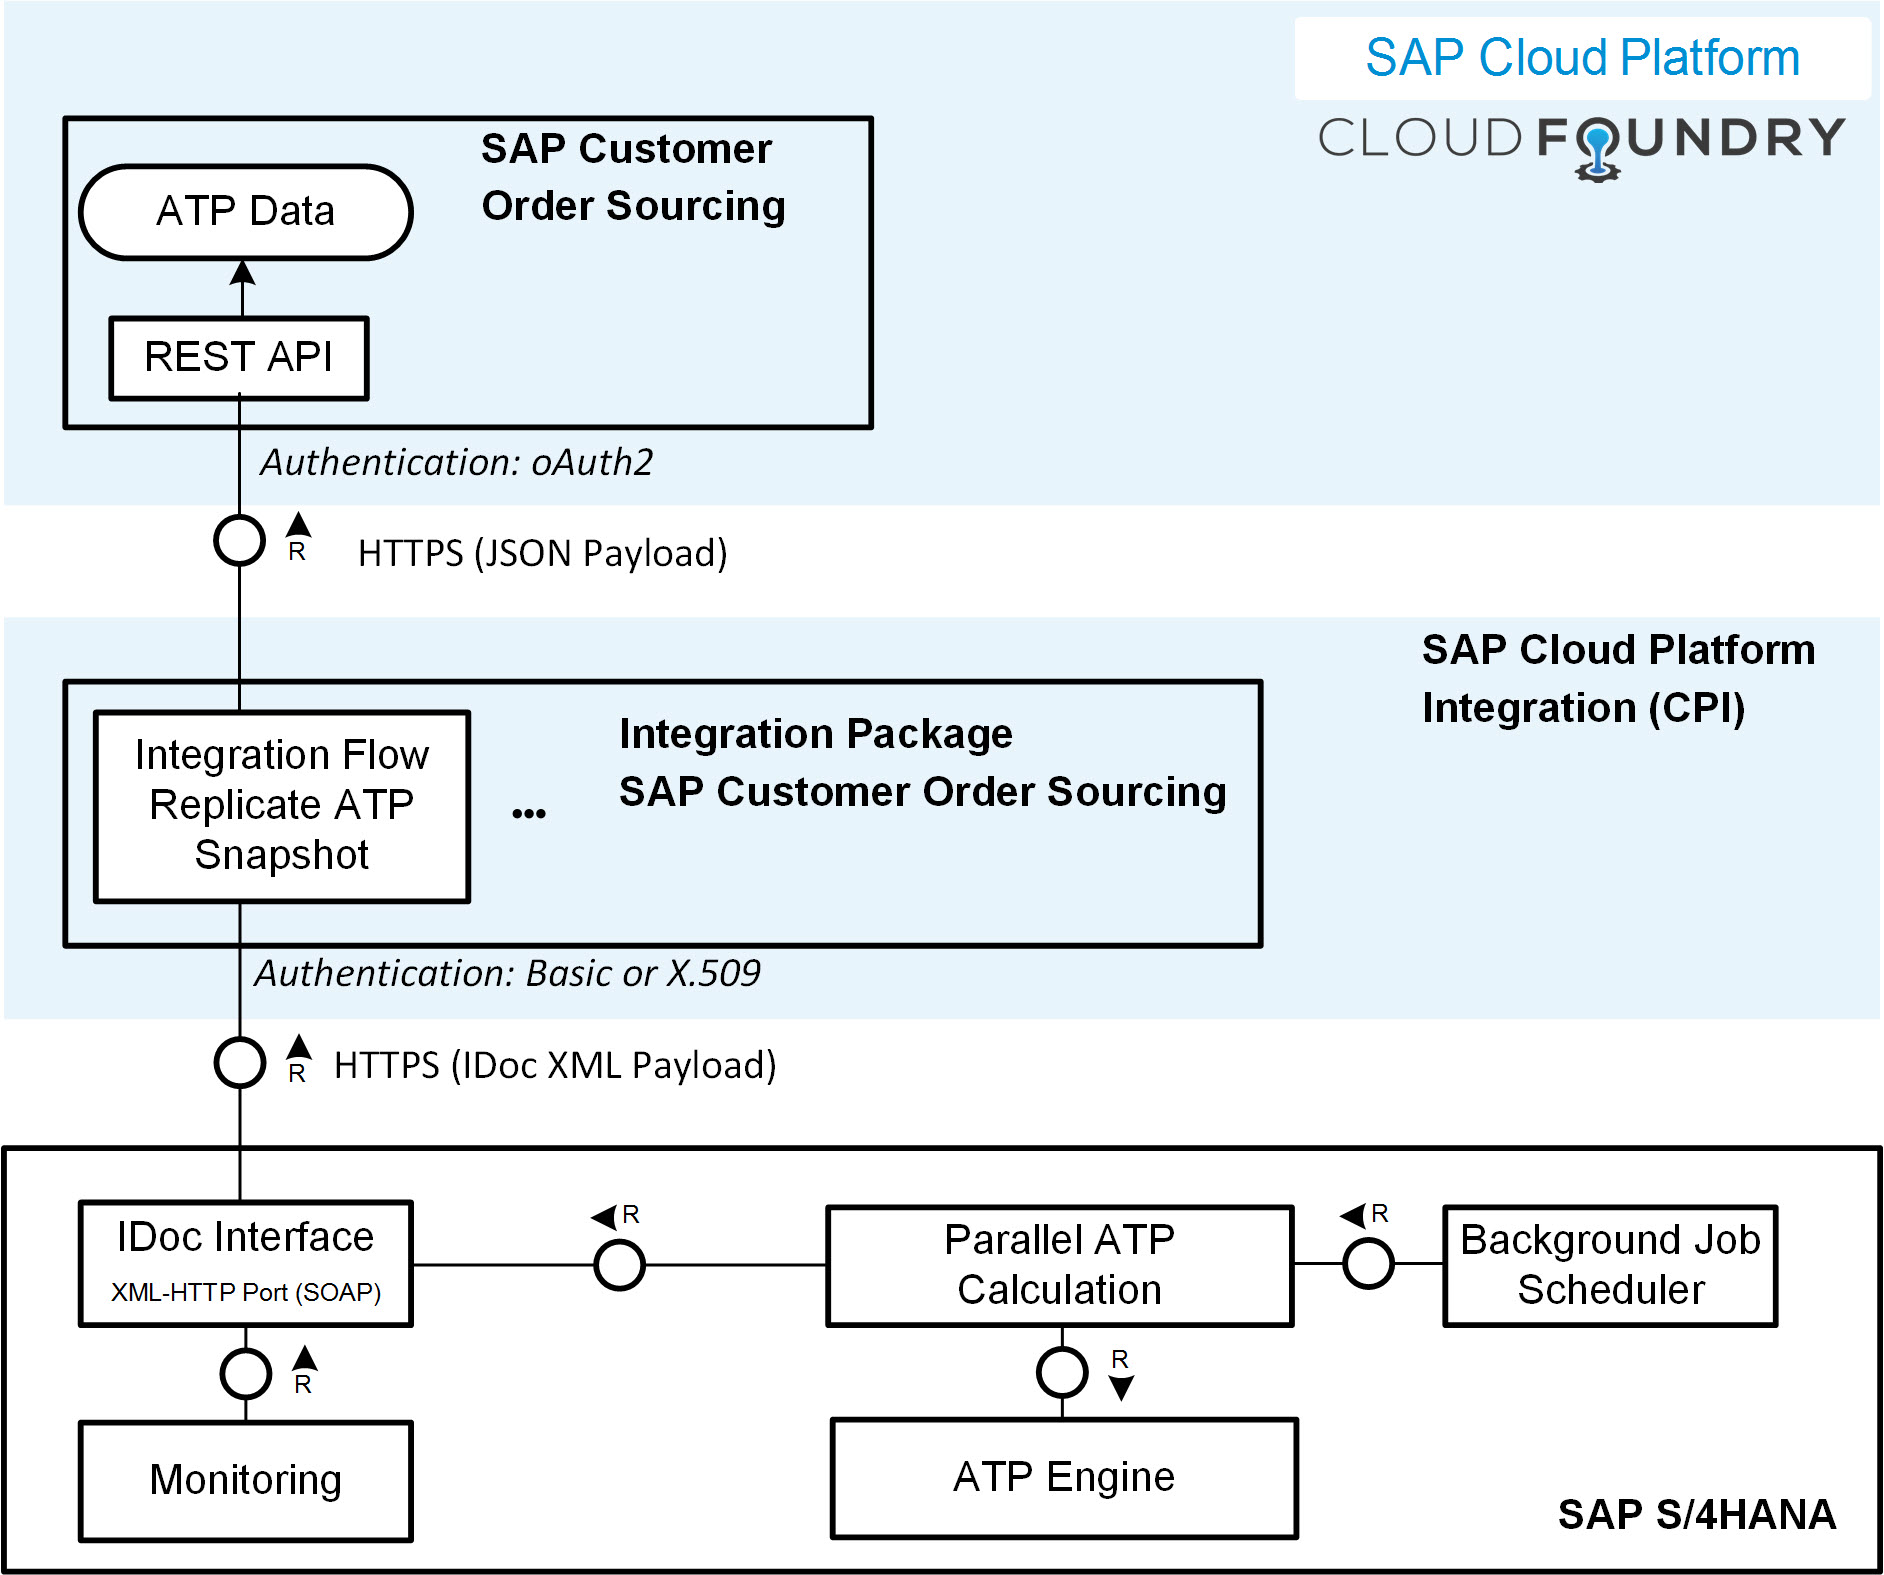 Architectural%20Overview%20of%20the%20integration%20of%20S/4HANA%20and%20SAP%20Customer%20Order%20Sourcing